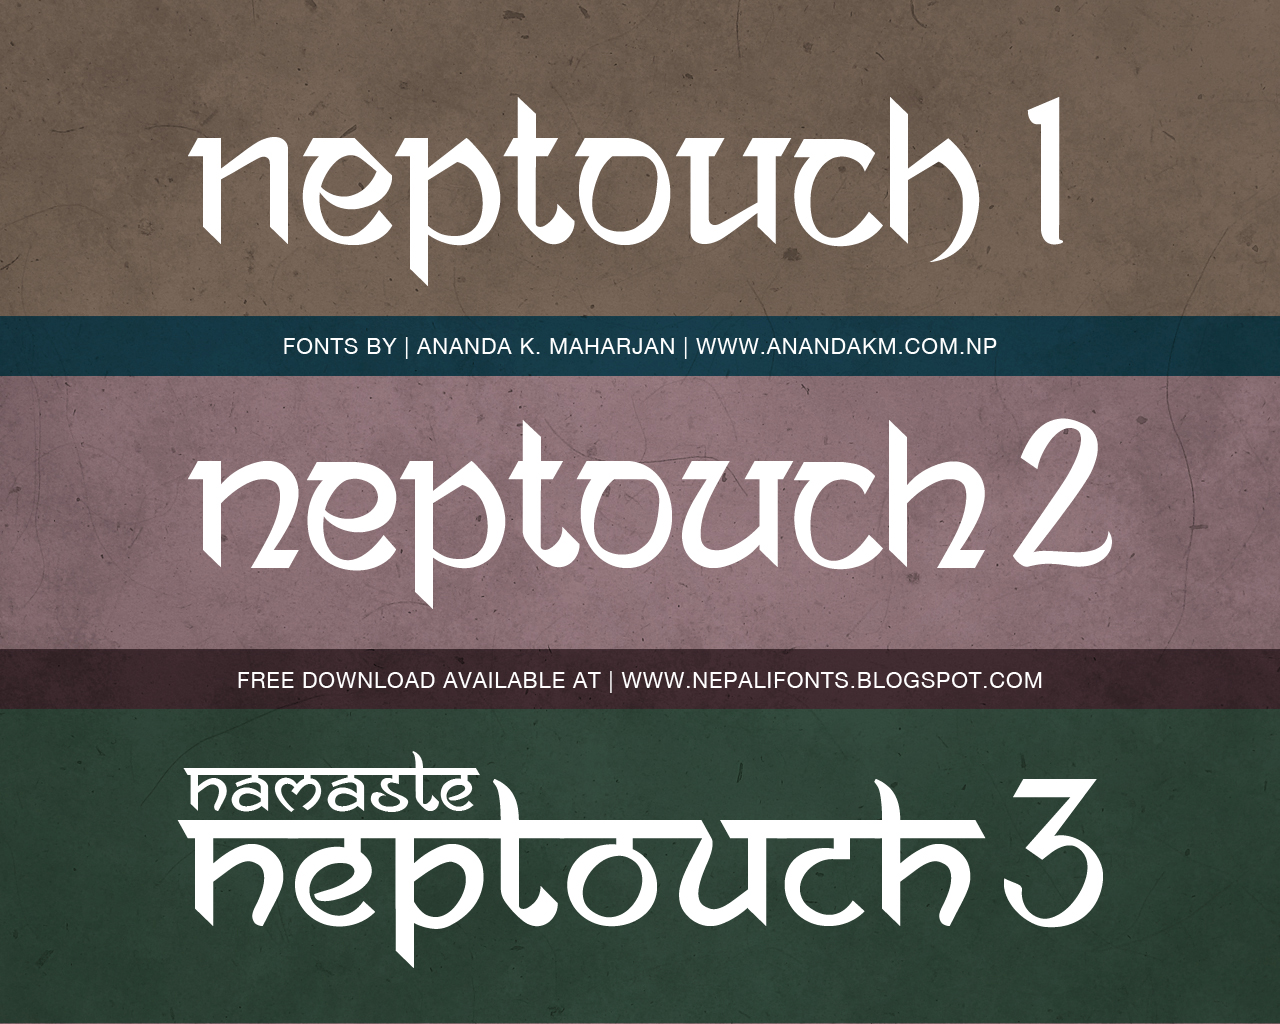 Ananda Neptouch 1  2 and 3 free fonts by lalitkala on DeviantArt